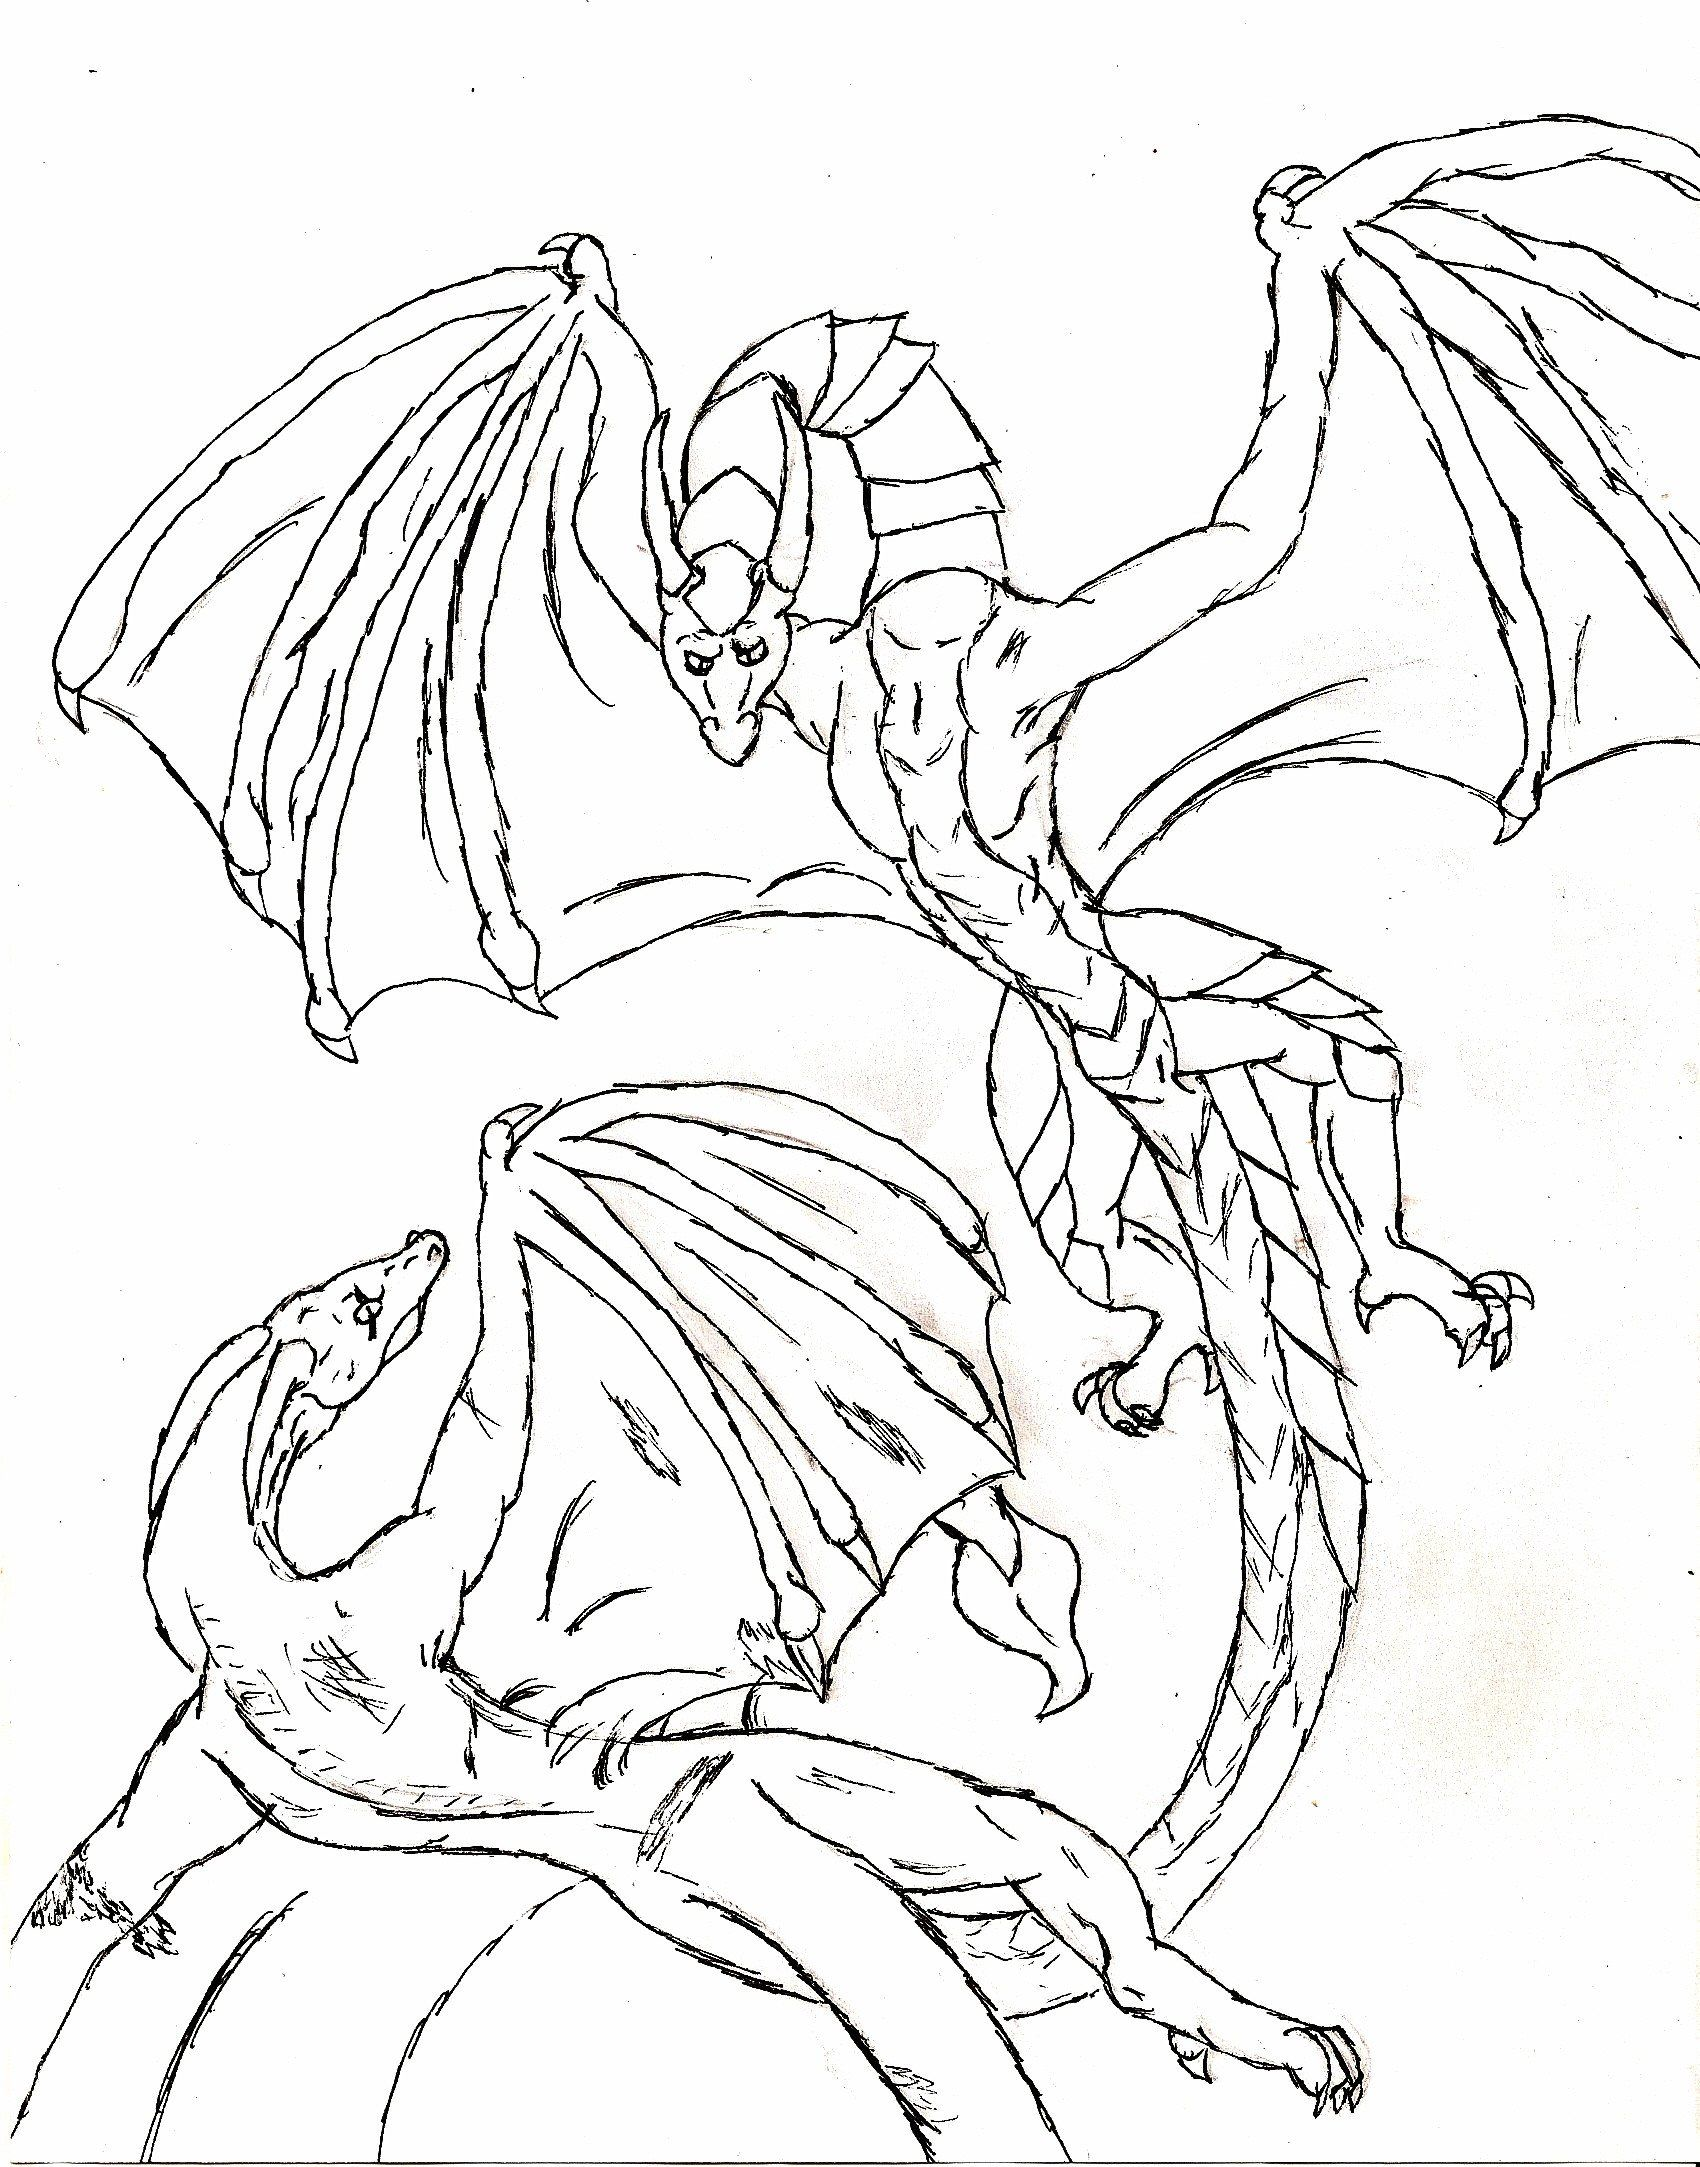 Baby Dragon Coloring Pages Free Printable Dragon Coloring Pages For Kids Dragon Coloring Page Coloring Pages For Kids Coloring Pages To Print